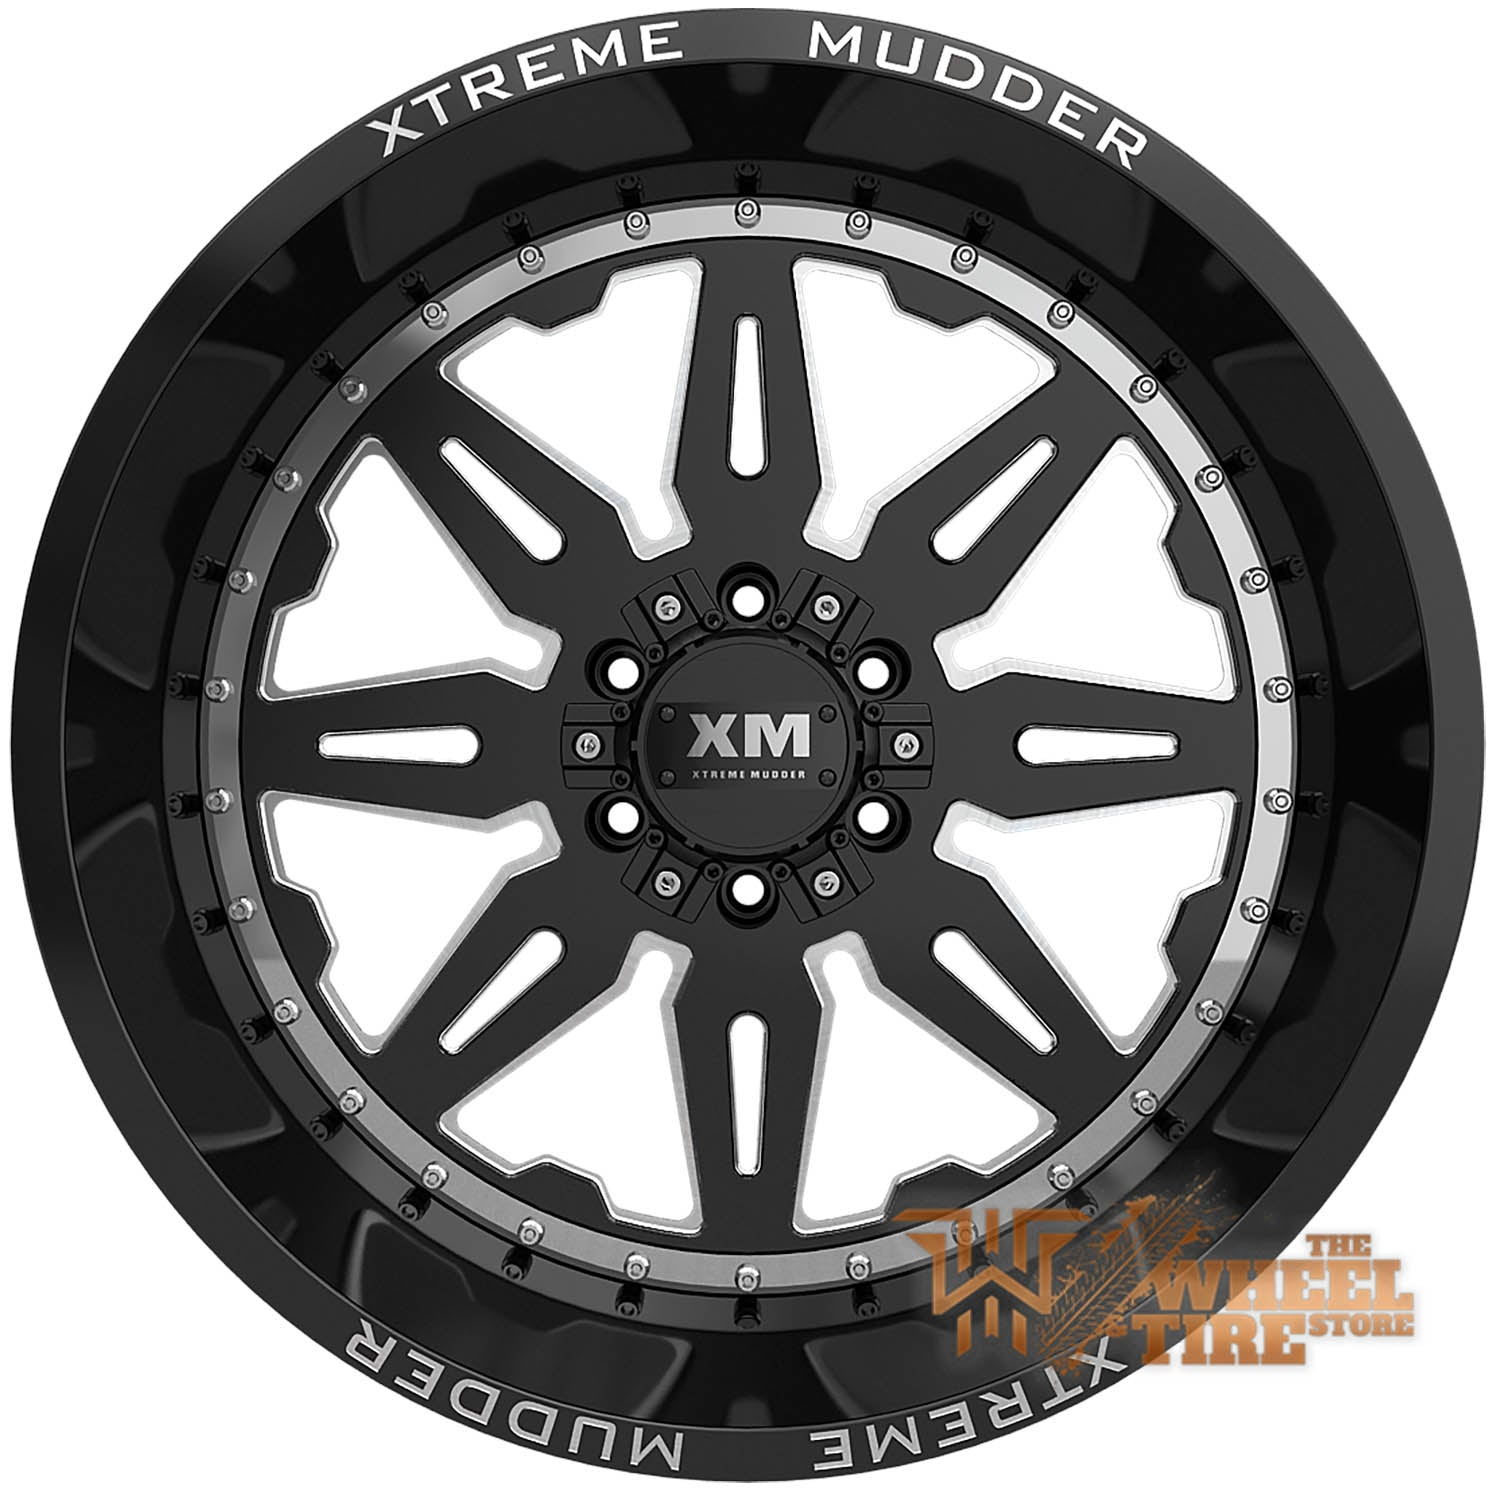 XTREME MUDDER XM-350 Wheel in Gloss Black Milled w/ Machined Ring